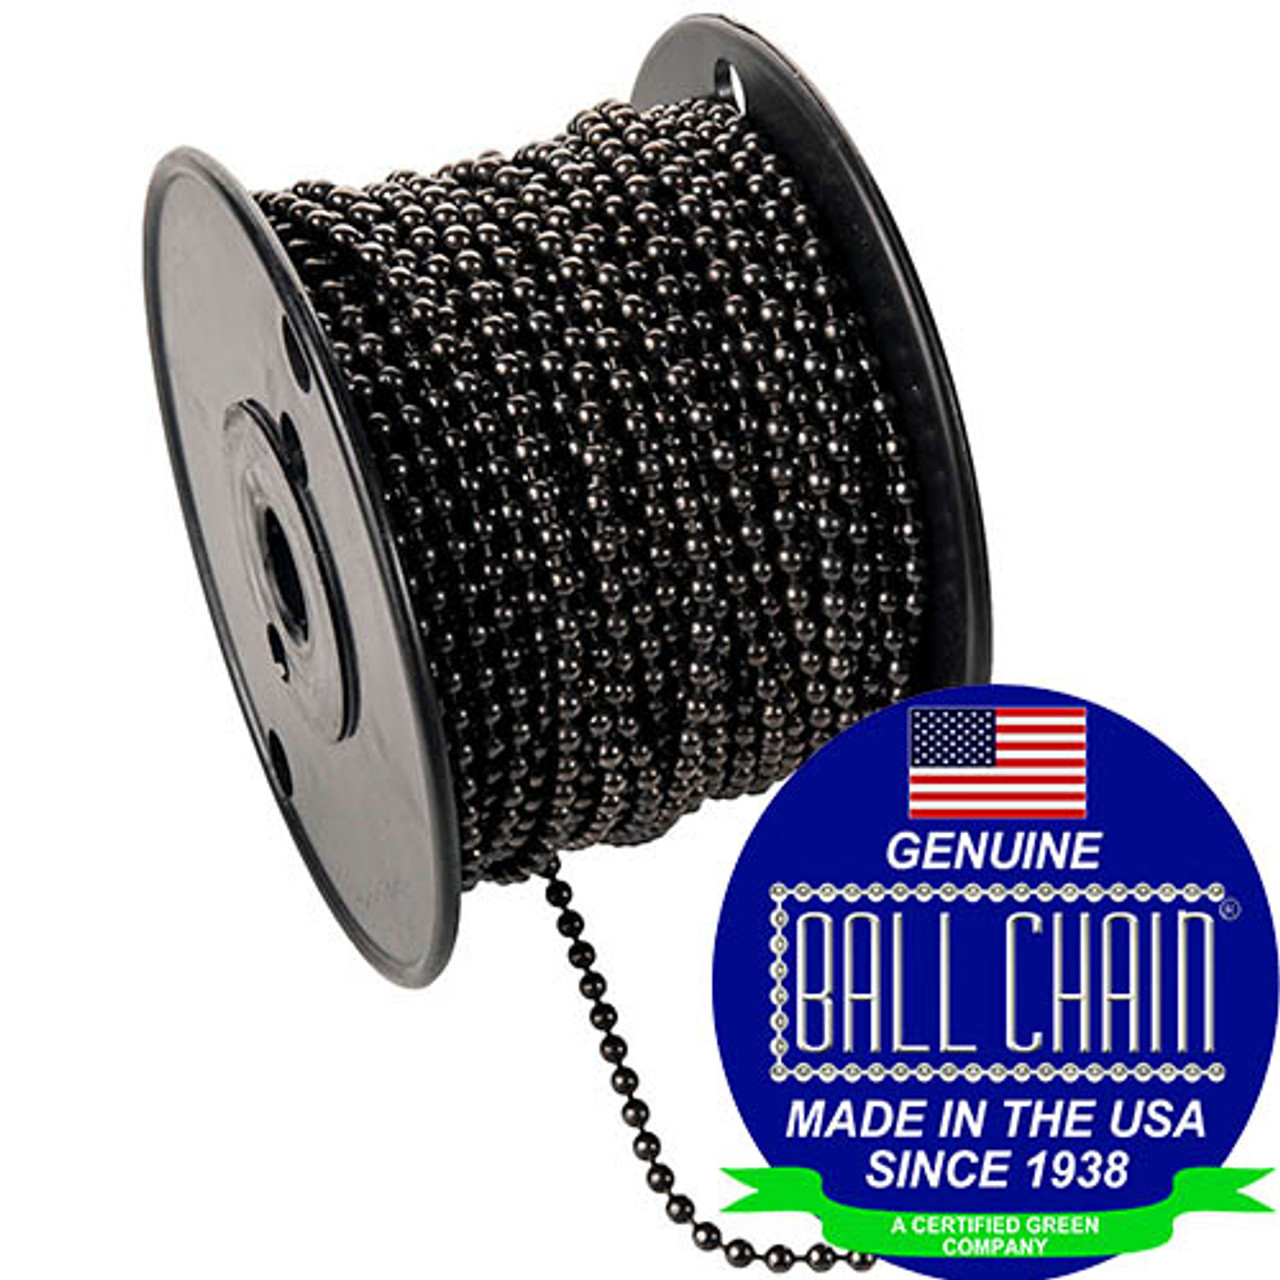 #10 Gun Metal Ball Chain Spool.